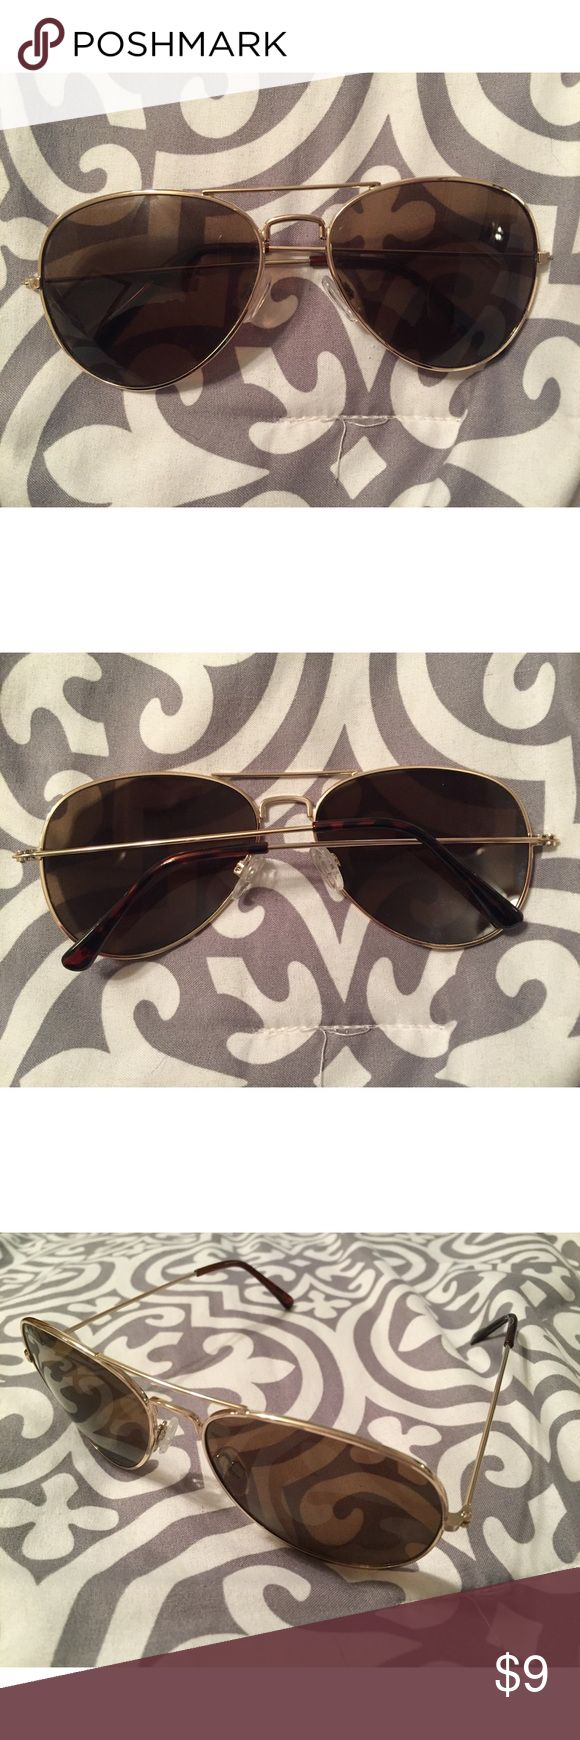 Women's Aviator Sunglasses These are a pair of women's aviator sunglasses that I purchased from Old Navy. They have only been worn once and are in excellent condition. Old Navy Accessories Sunglasses